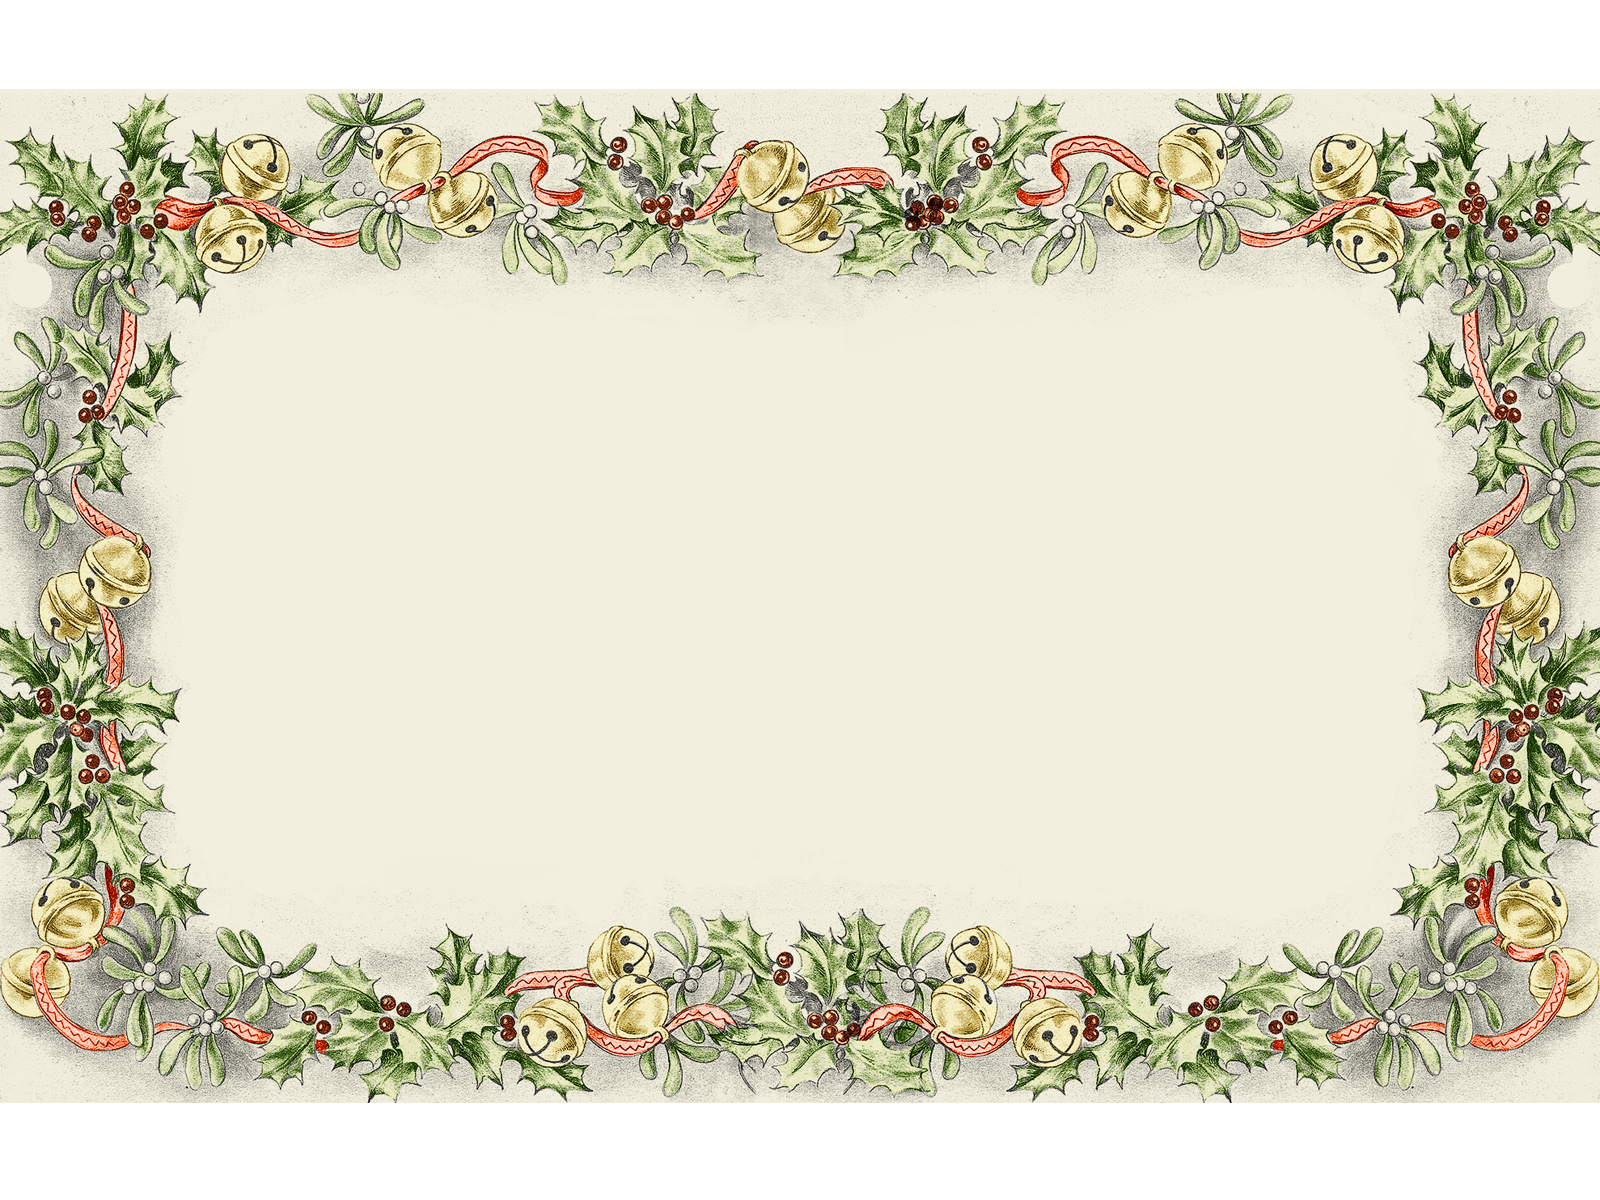 13 free photoshop christmas frames and borders images phot card from user n4tlit in yandexcollections - Free Christmas Photo Frames